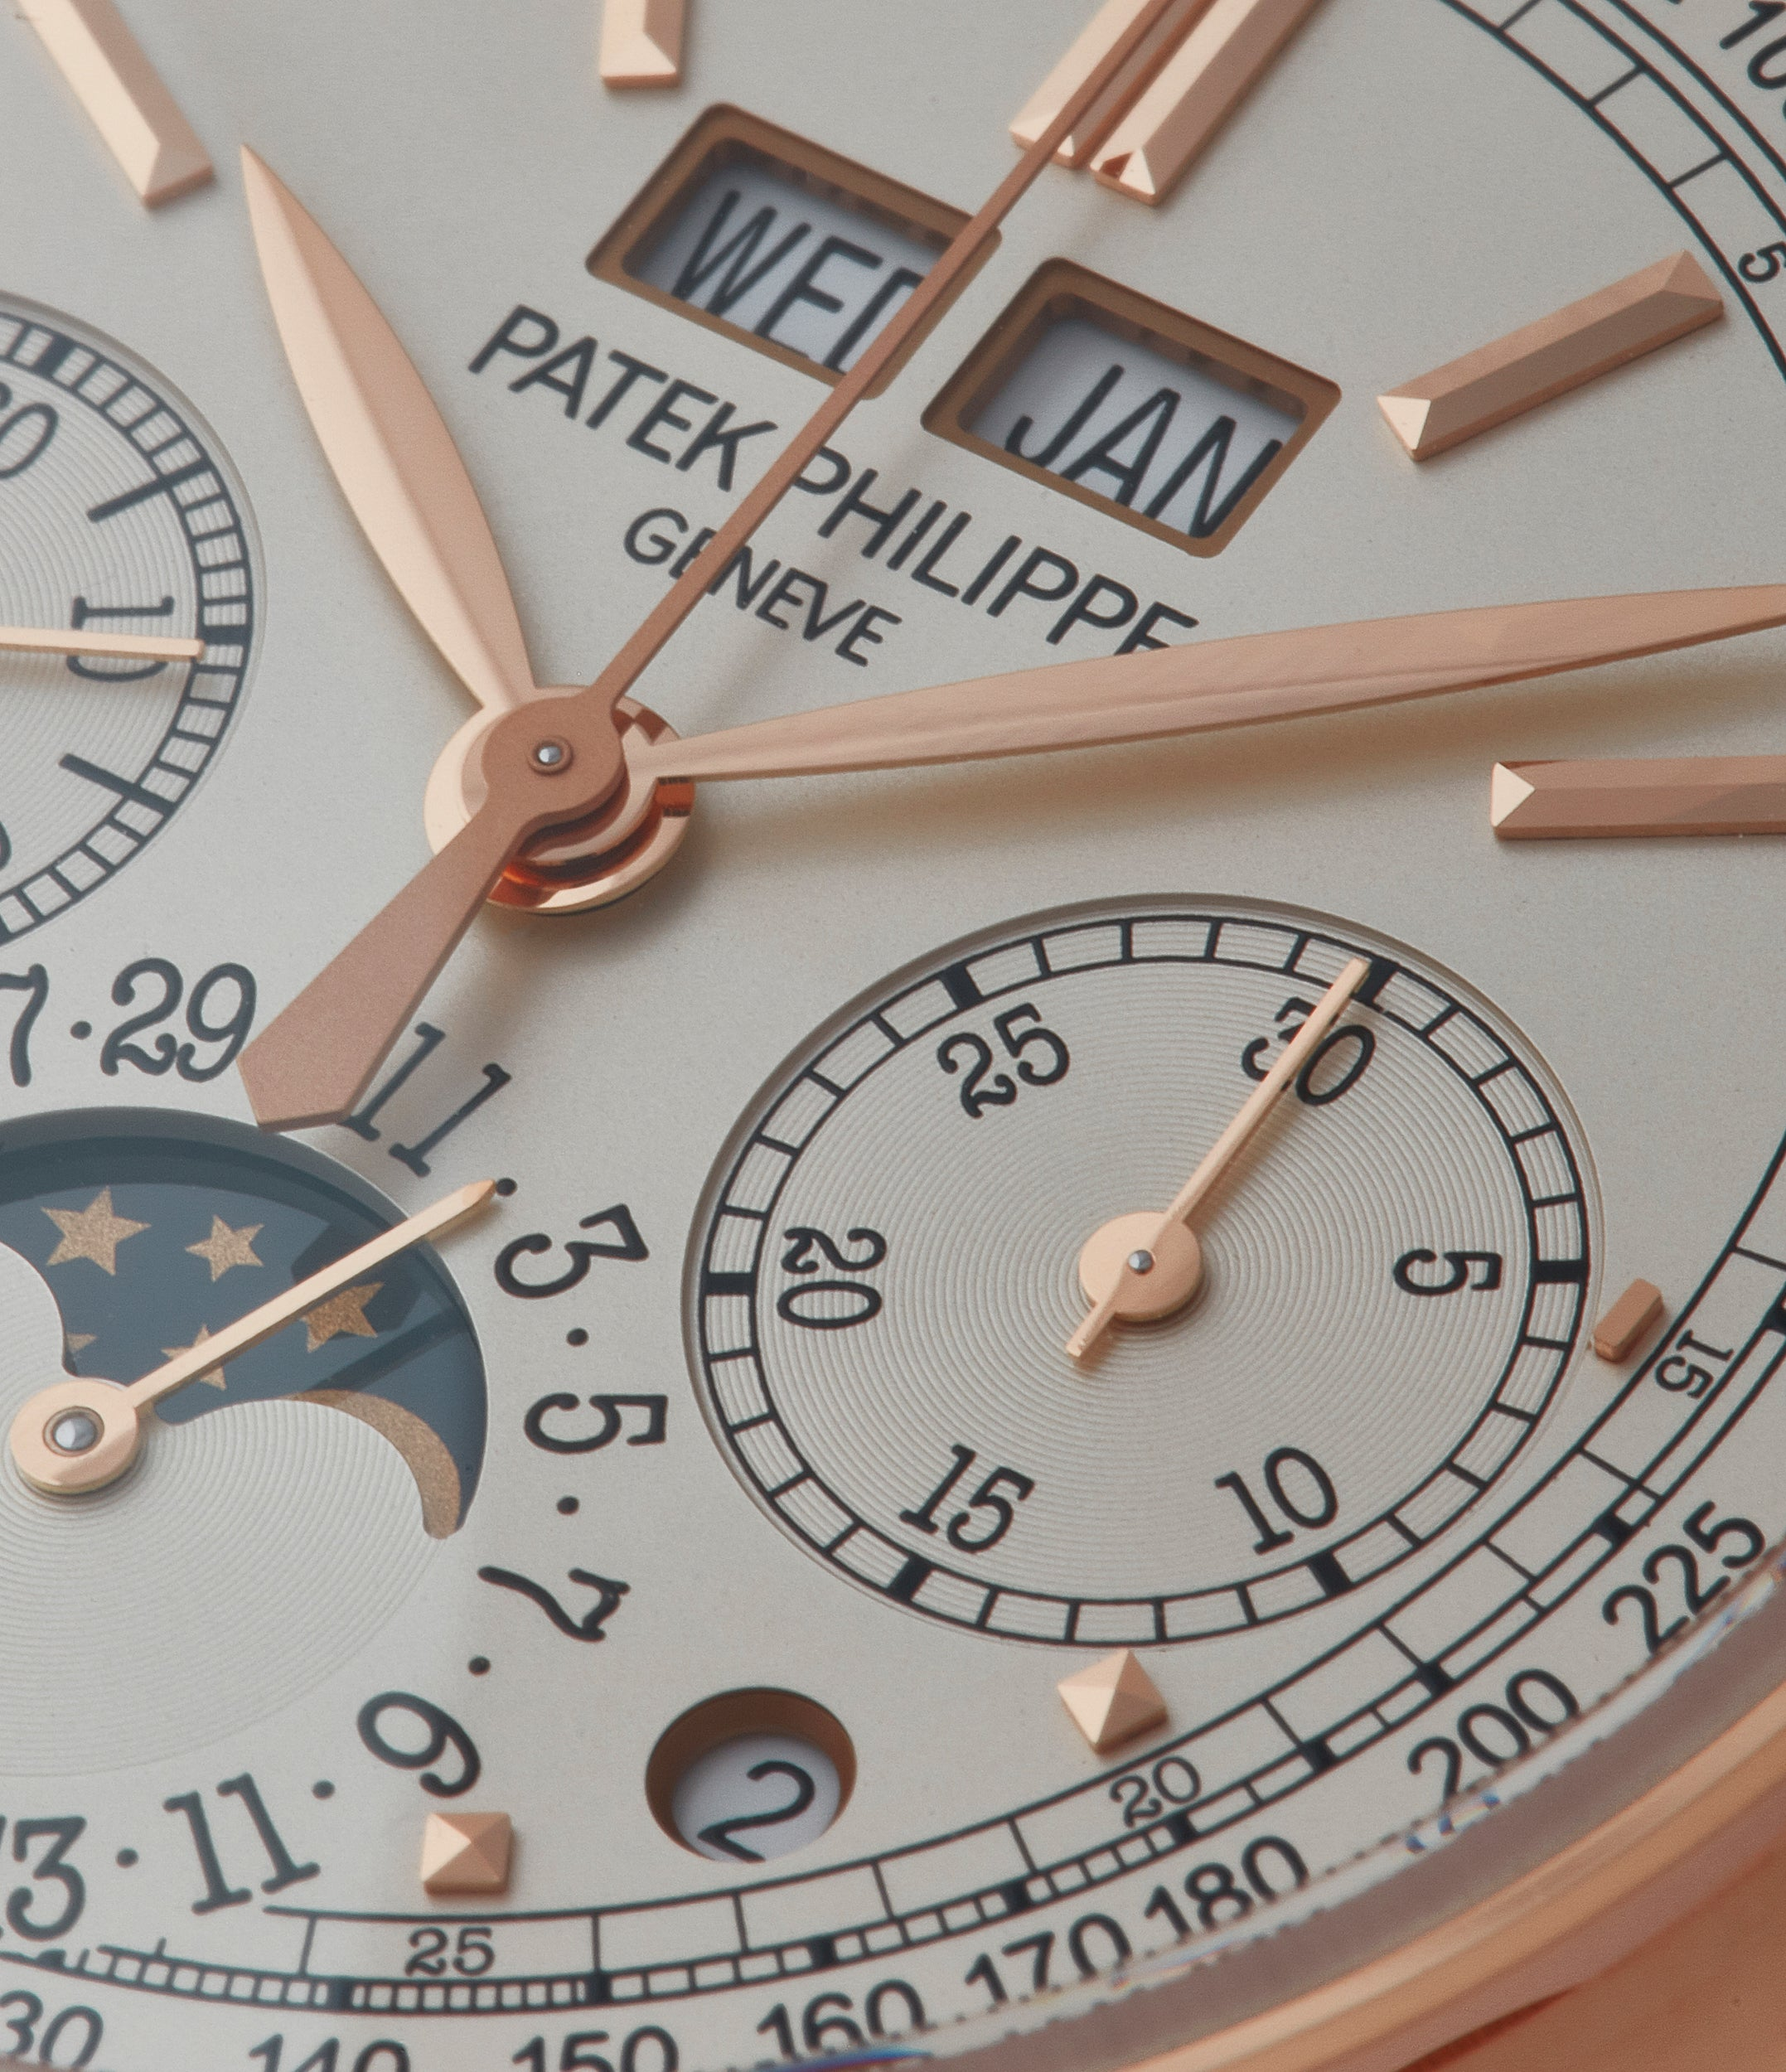 silver dial perpetual calendar Patek Philippe 5270R Grand Complications Chronograph rose gold dress watch for sale online at A Collected Man London UK specialist of rare watches